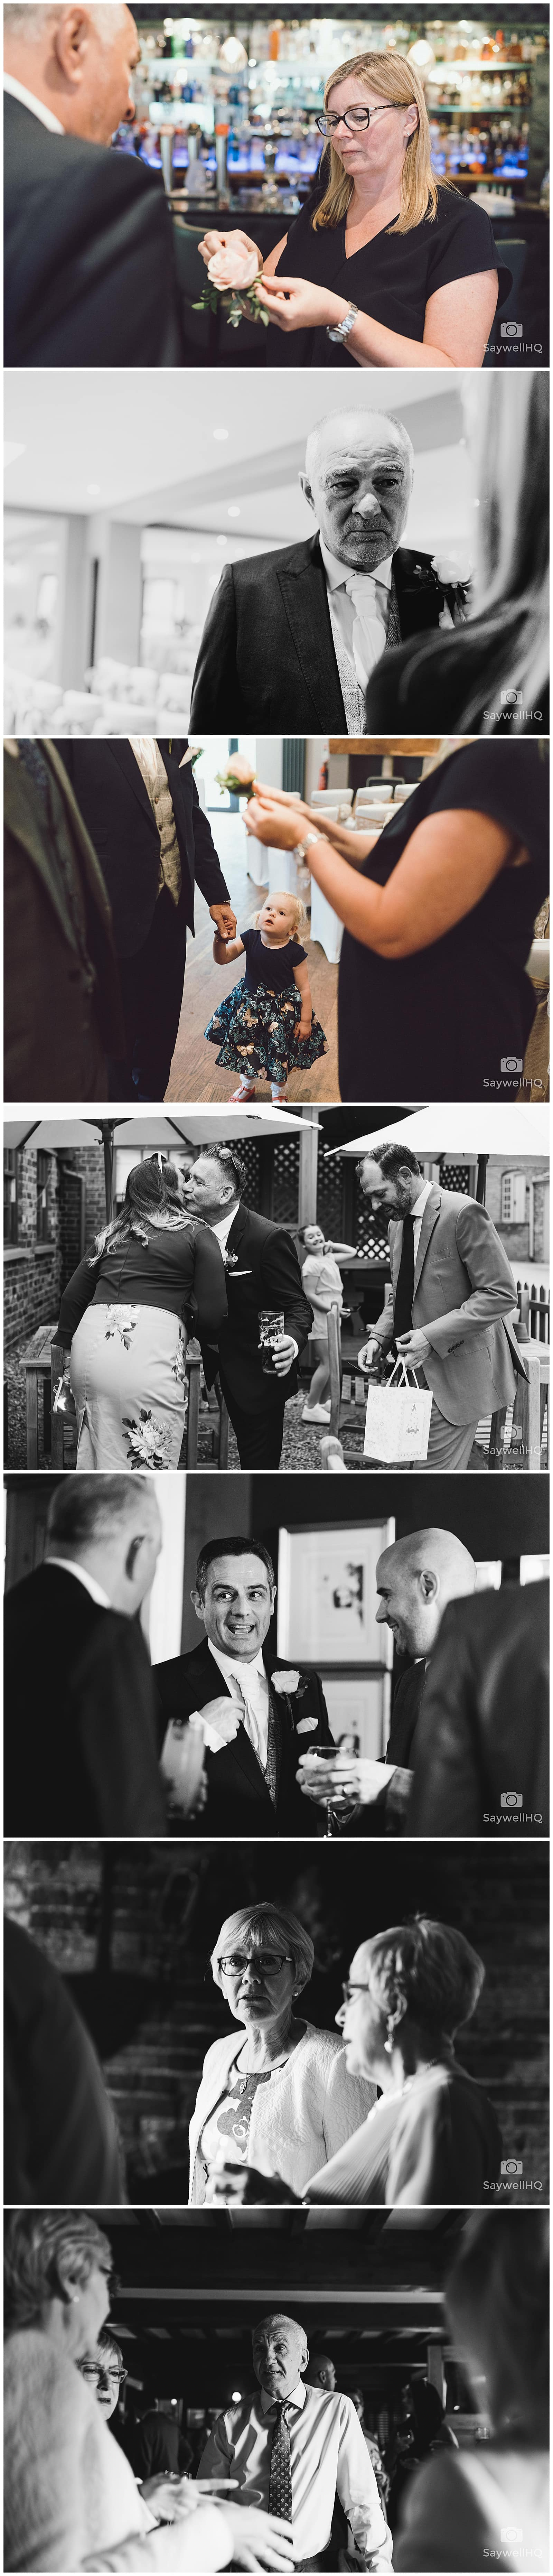 The Chequers Inn Woolsthorpe Wedding Photography - Guest Arrivals